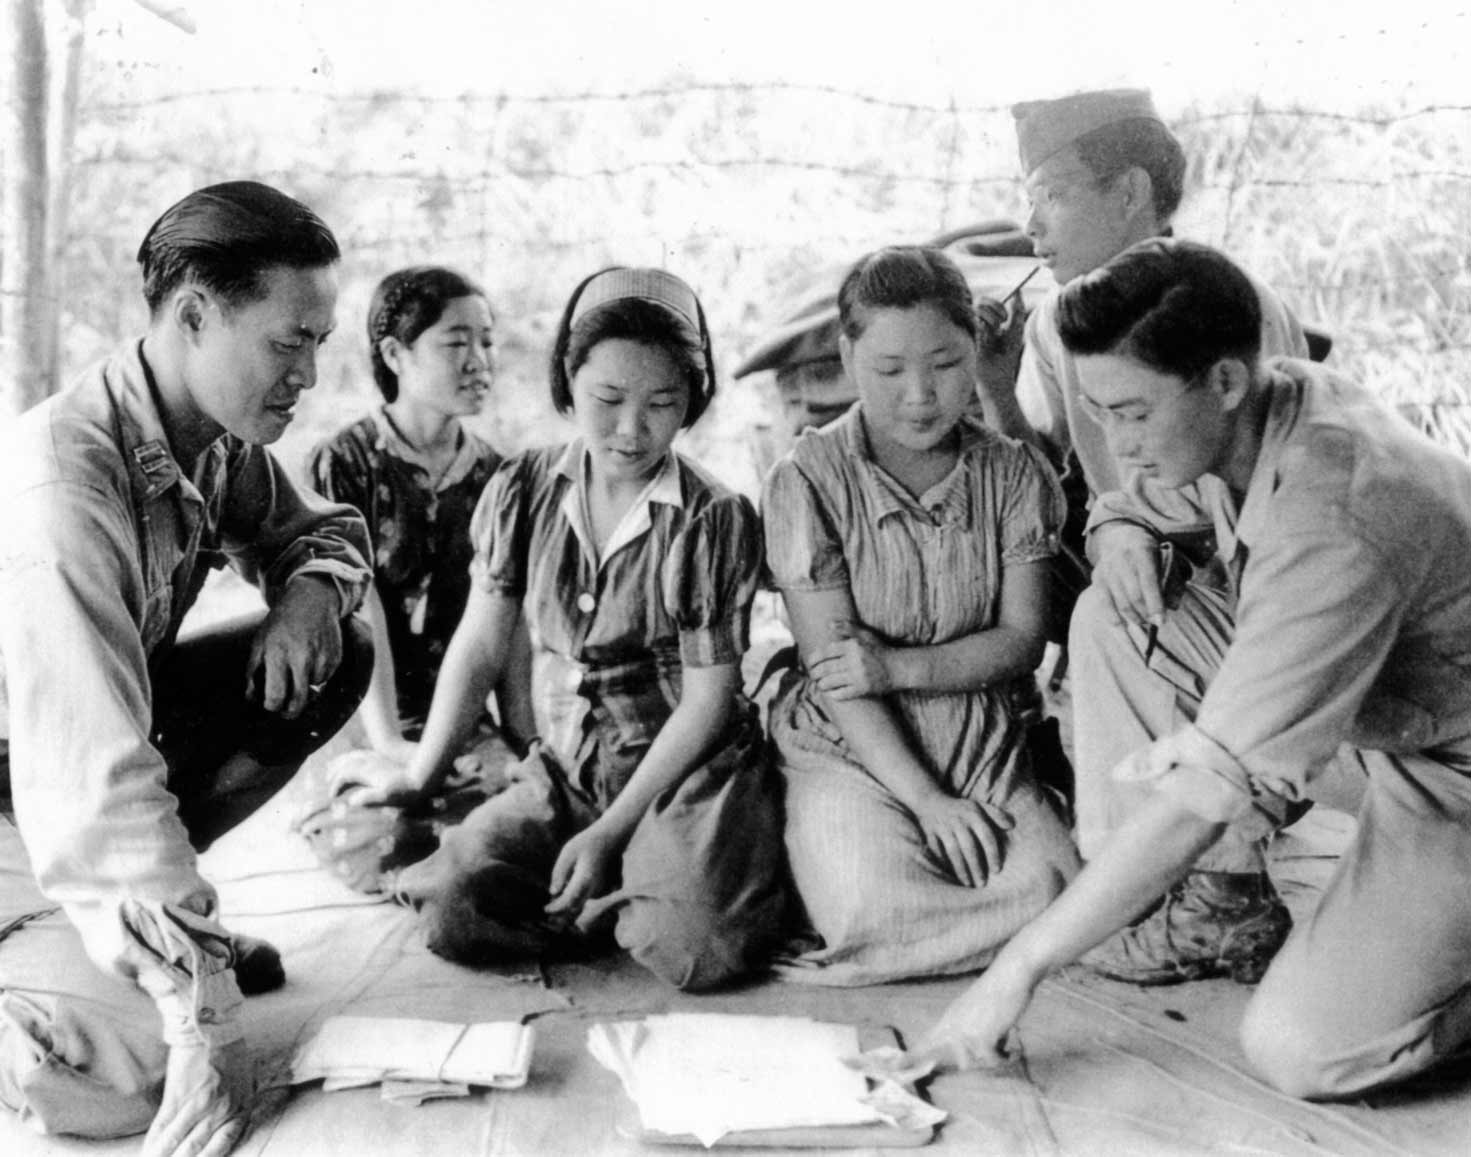 Will Japans Comfort Women Ever See Justice? - BORGEN